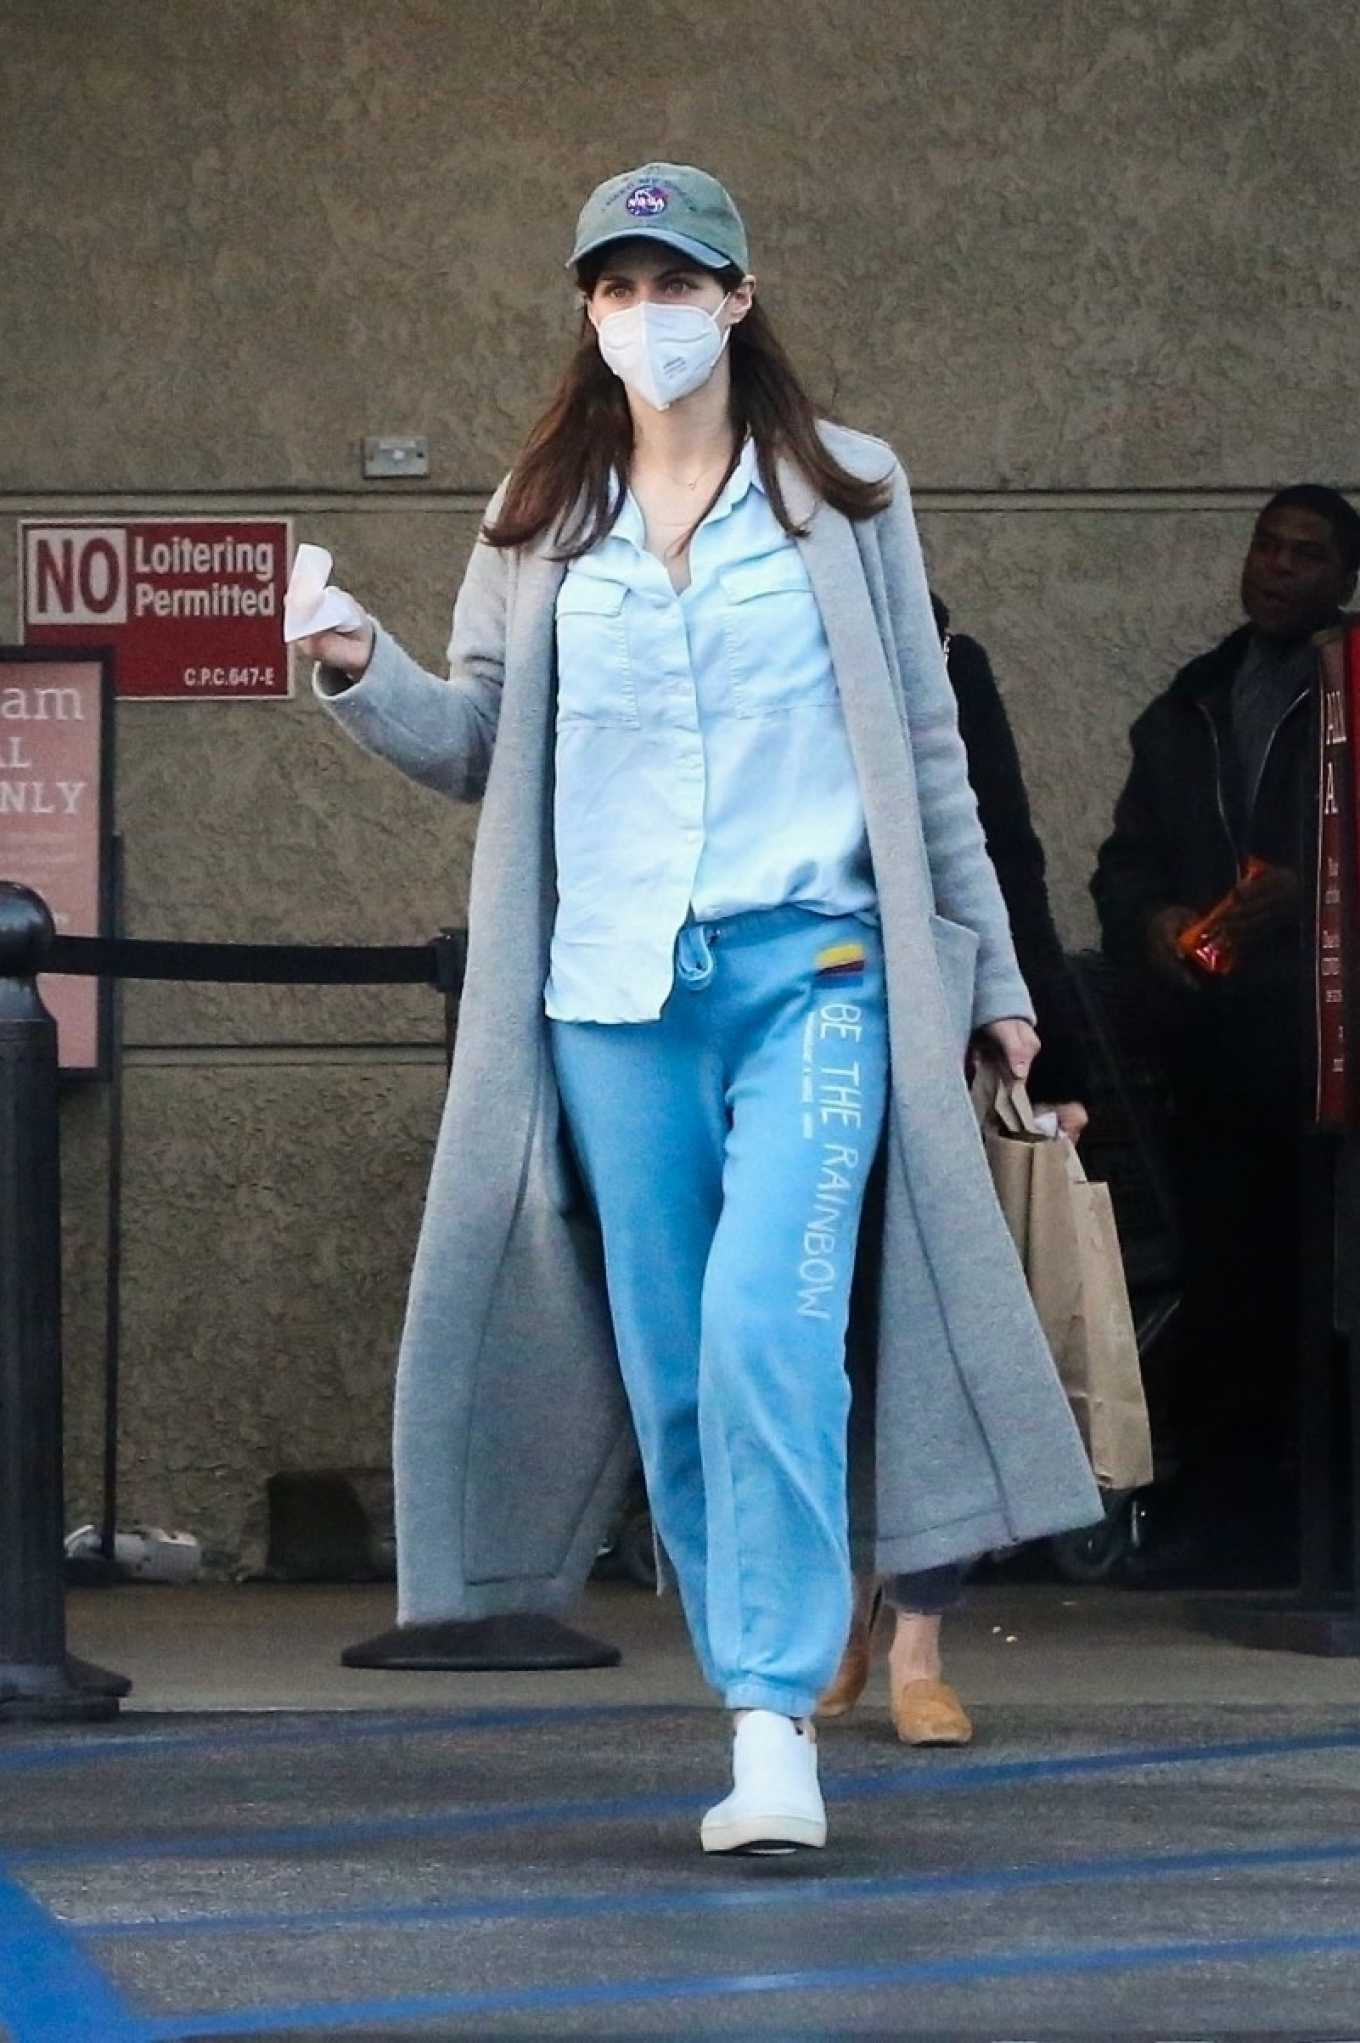 Alexandra Daddario - Dons a face mask while shopping in Los Angeles